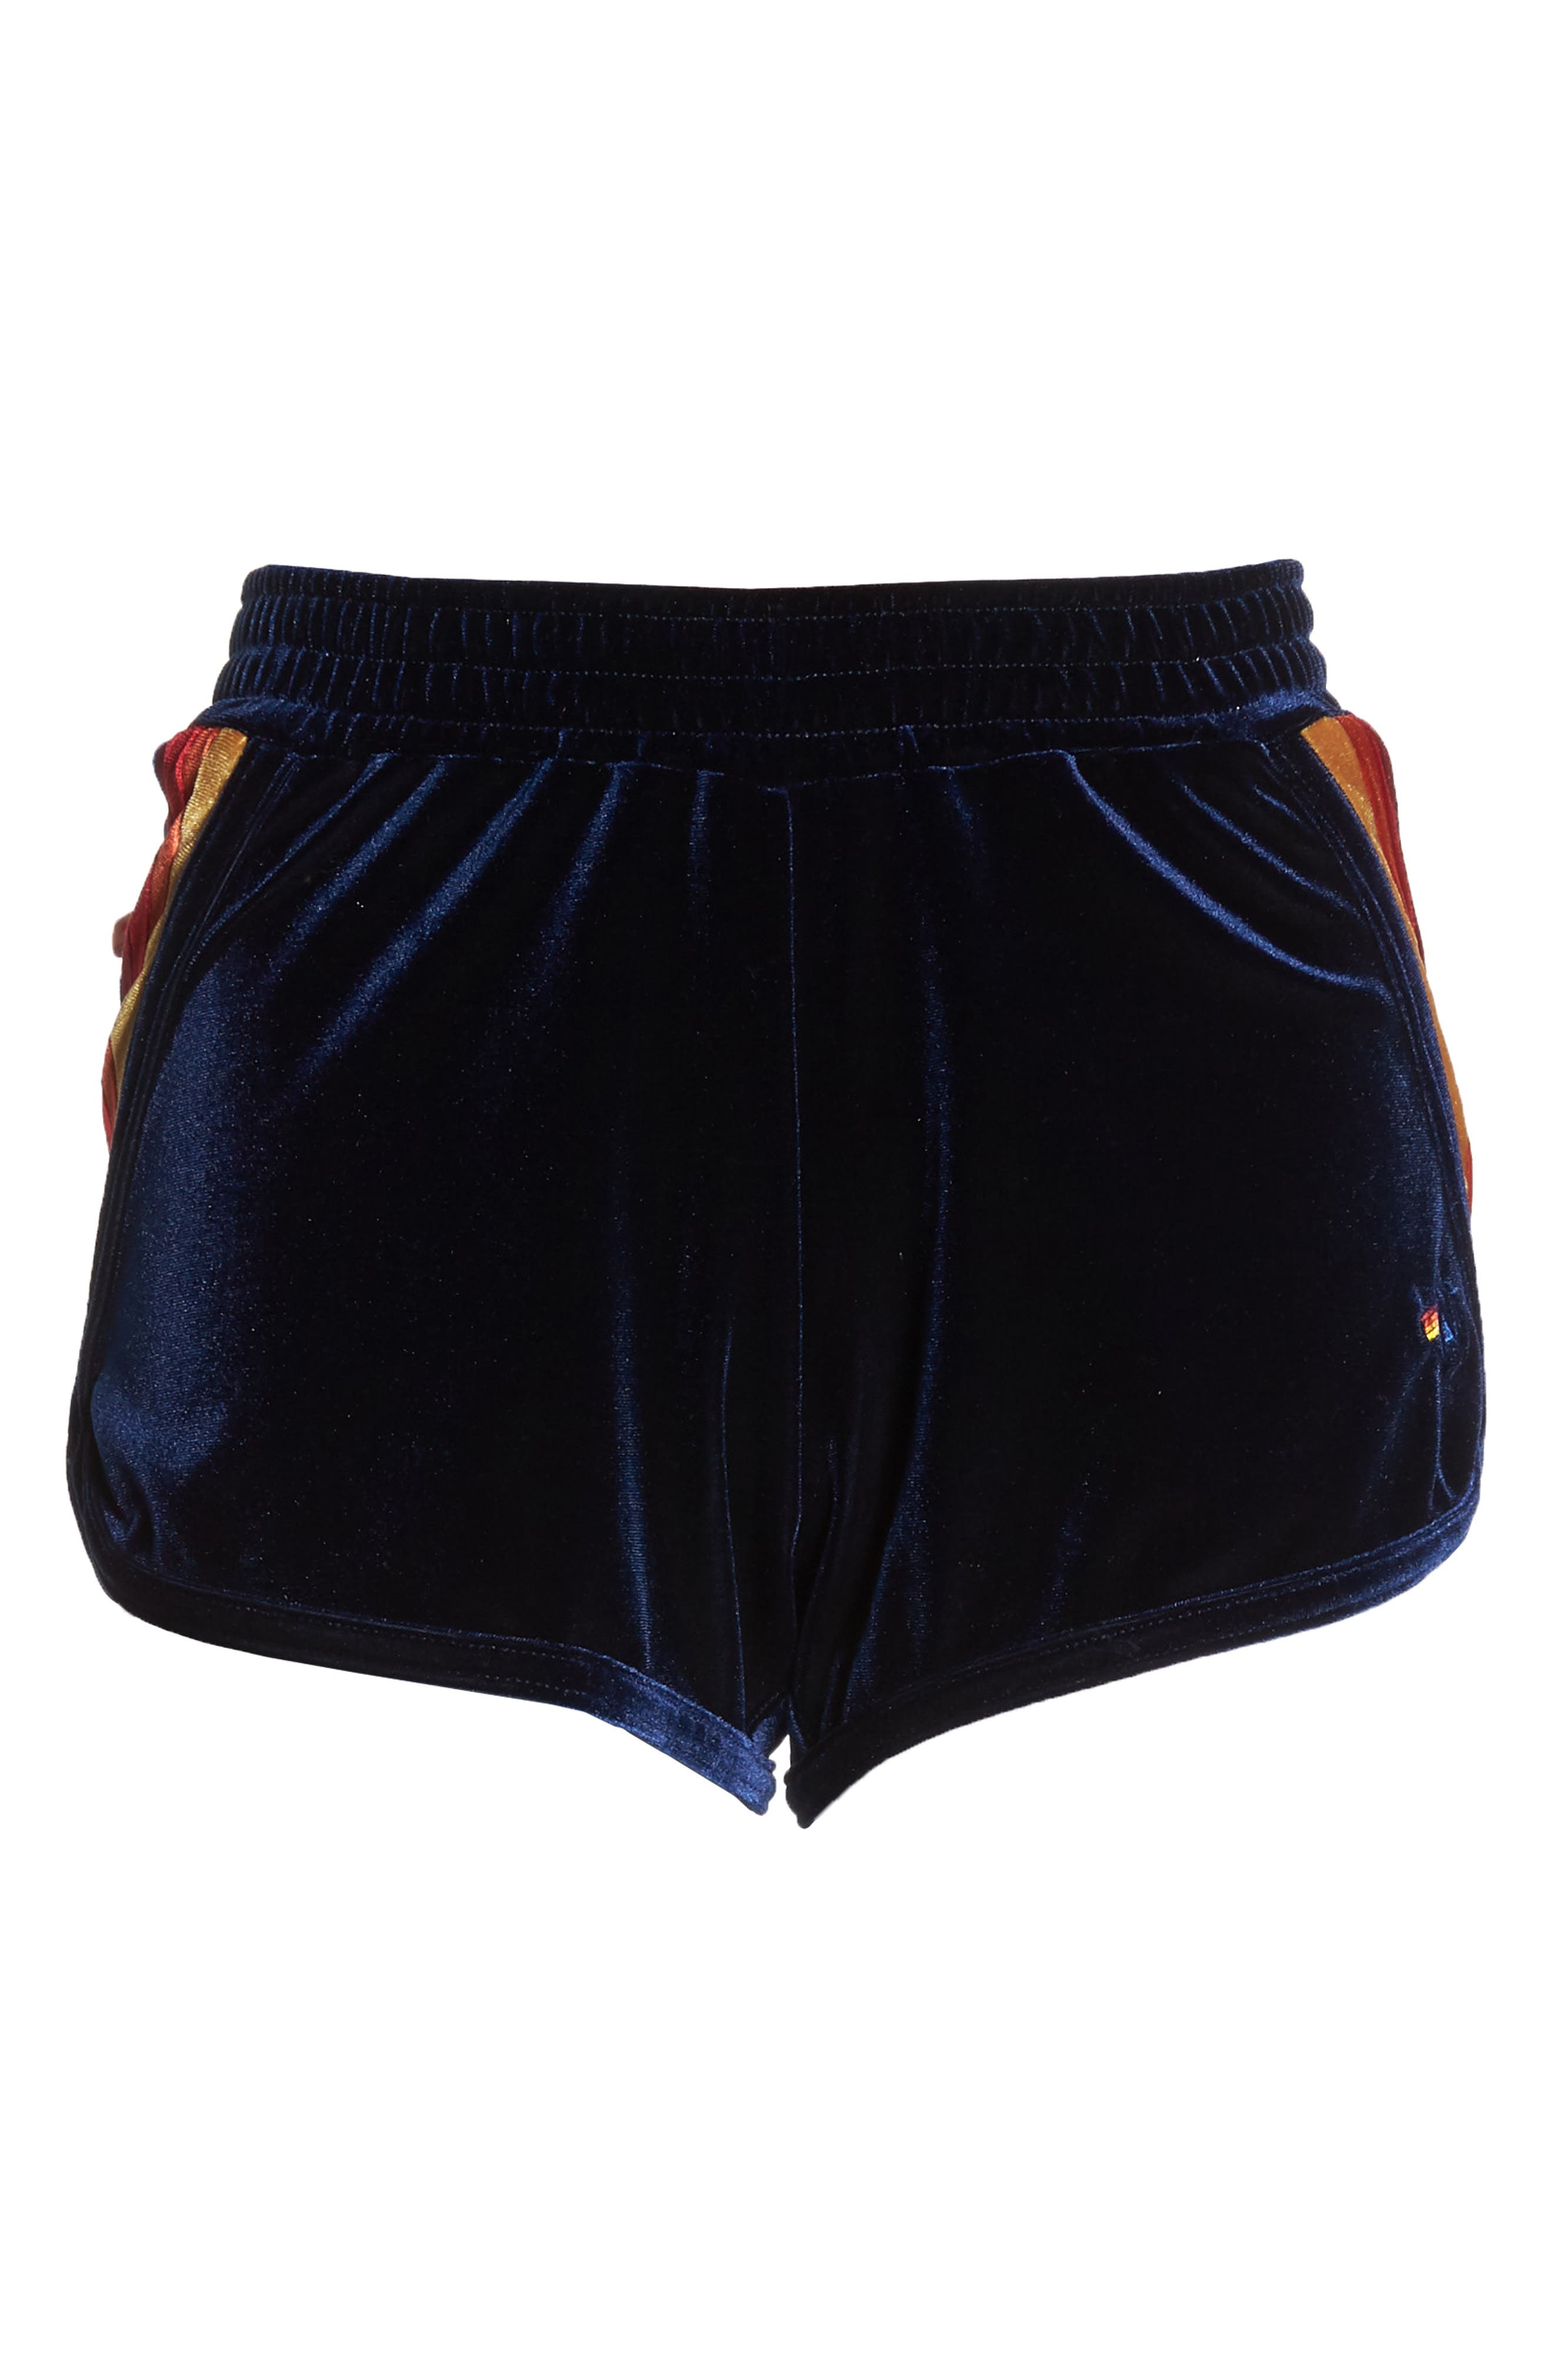 5-Stripe Velvet Running Shorts,                             Alternate thumbnail 6, color,                             400